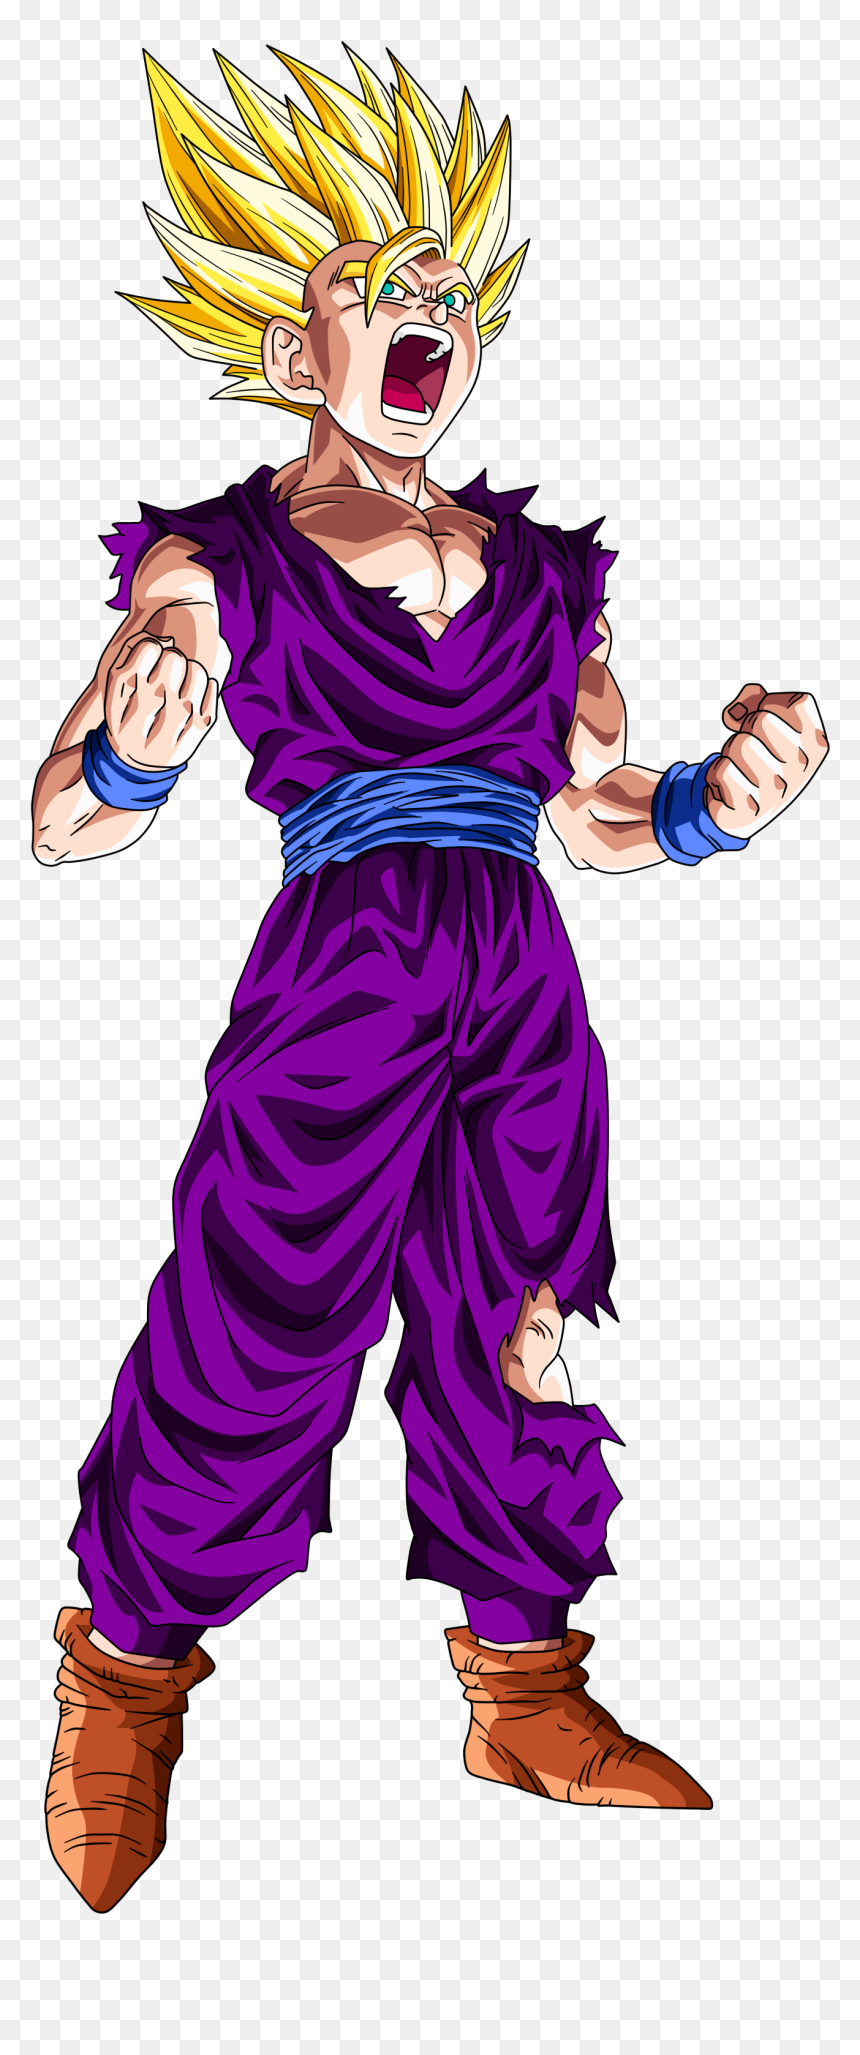 Teen Gohan Super Saiyan 2 Hd Wallpaper Backgrounds Gohan Ssj2 Hd Png Download Vhv